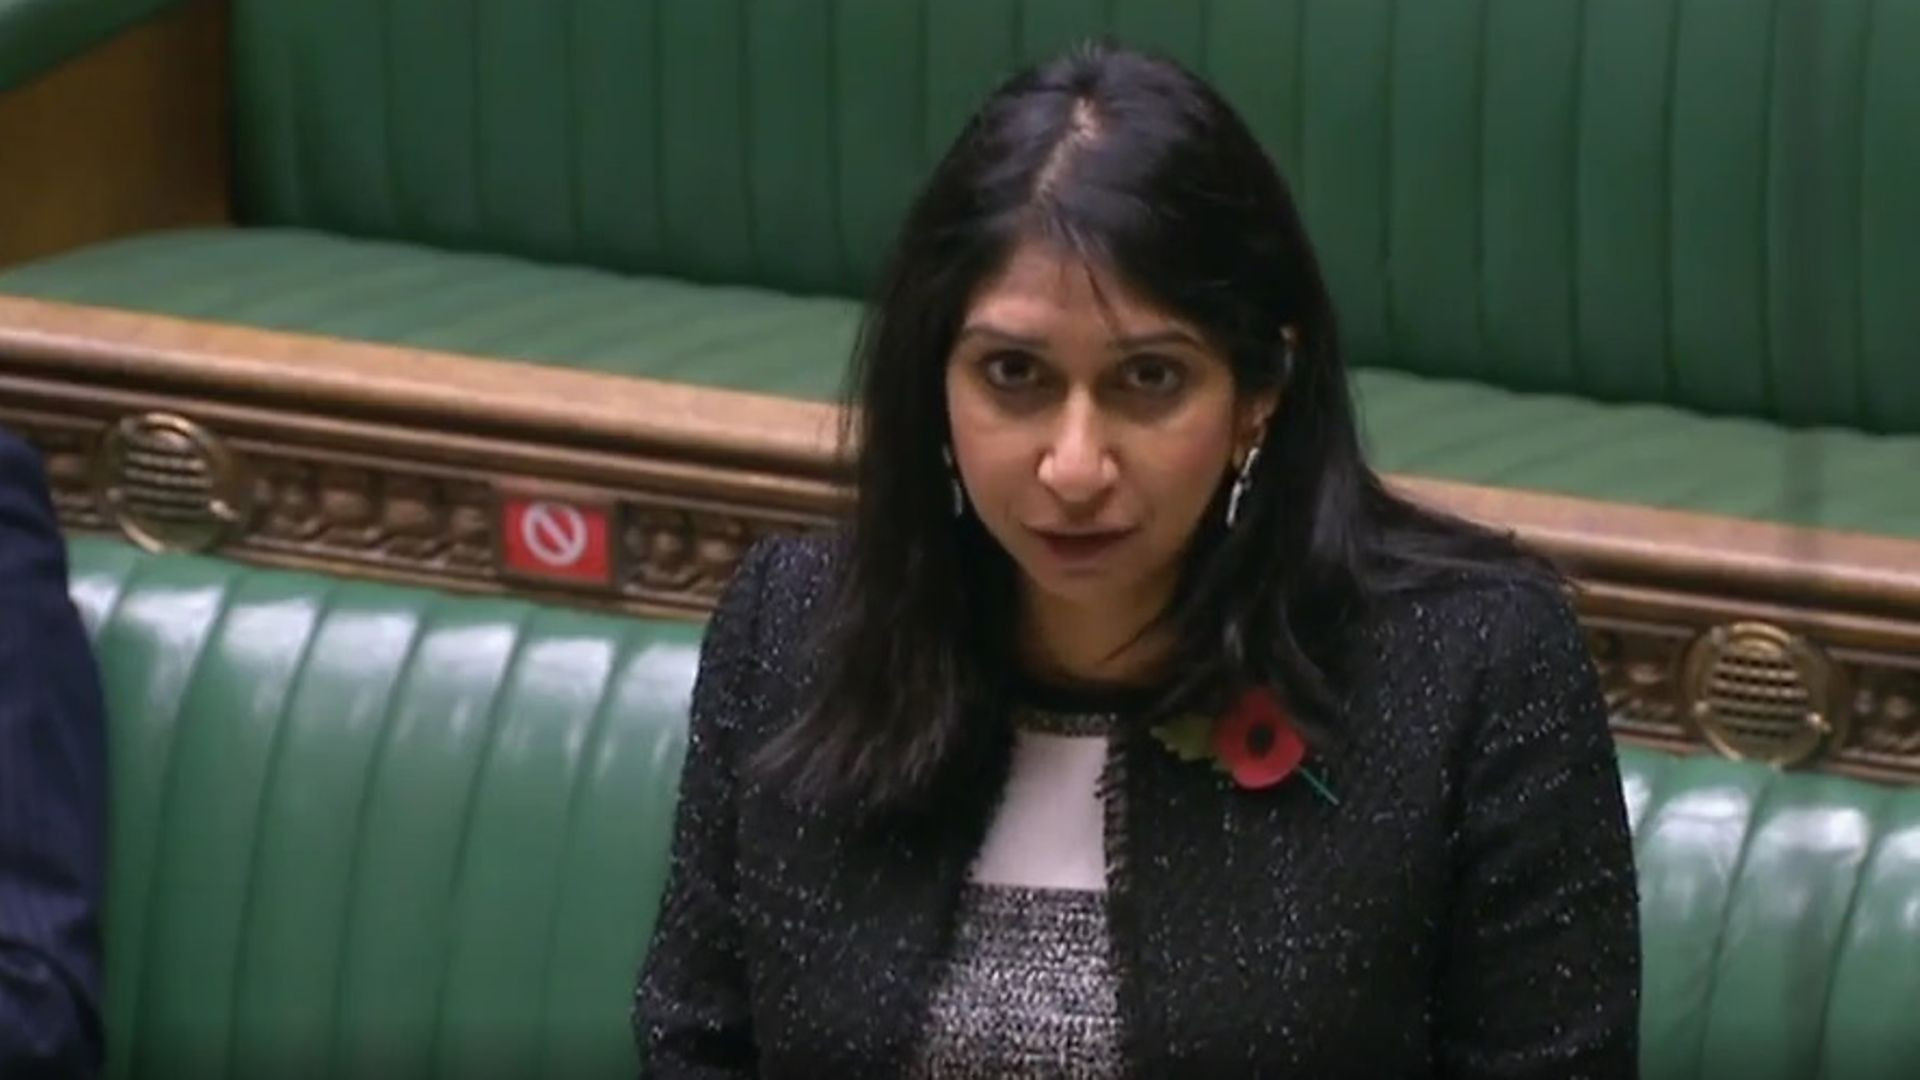 Suella Braverman in the House of Commons - Credit: Parliament Live